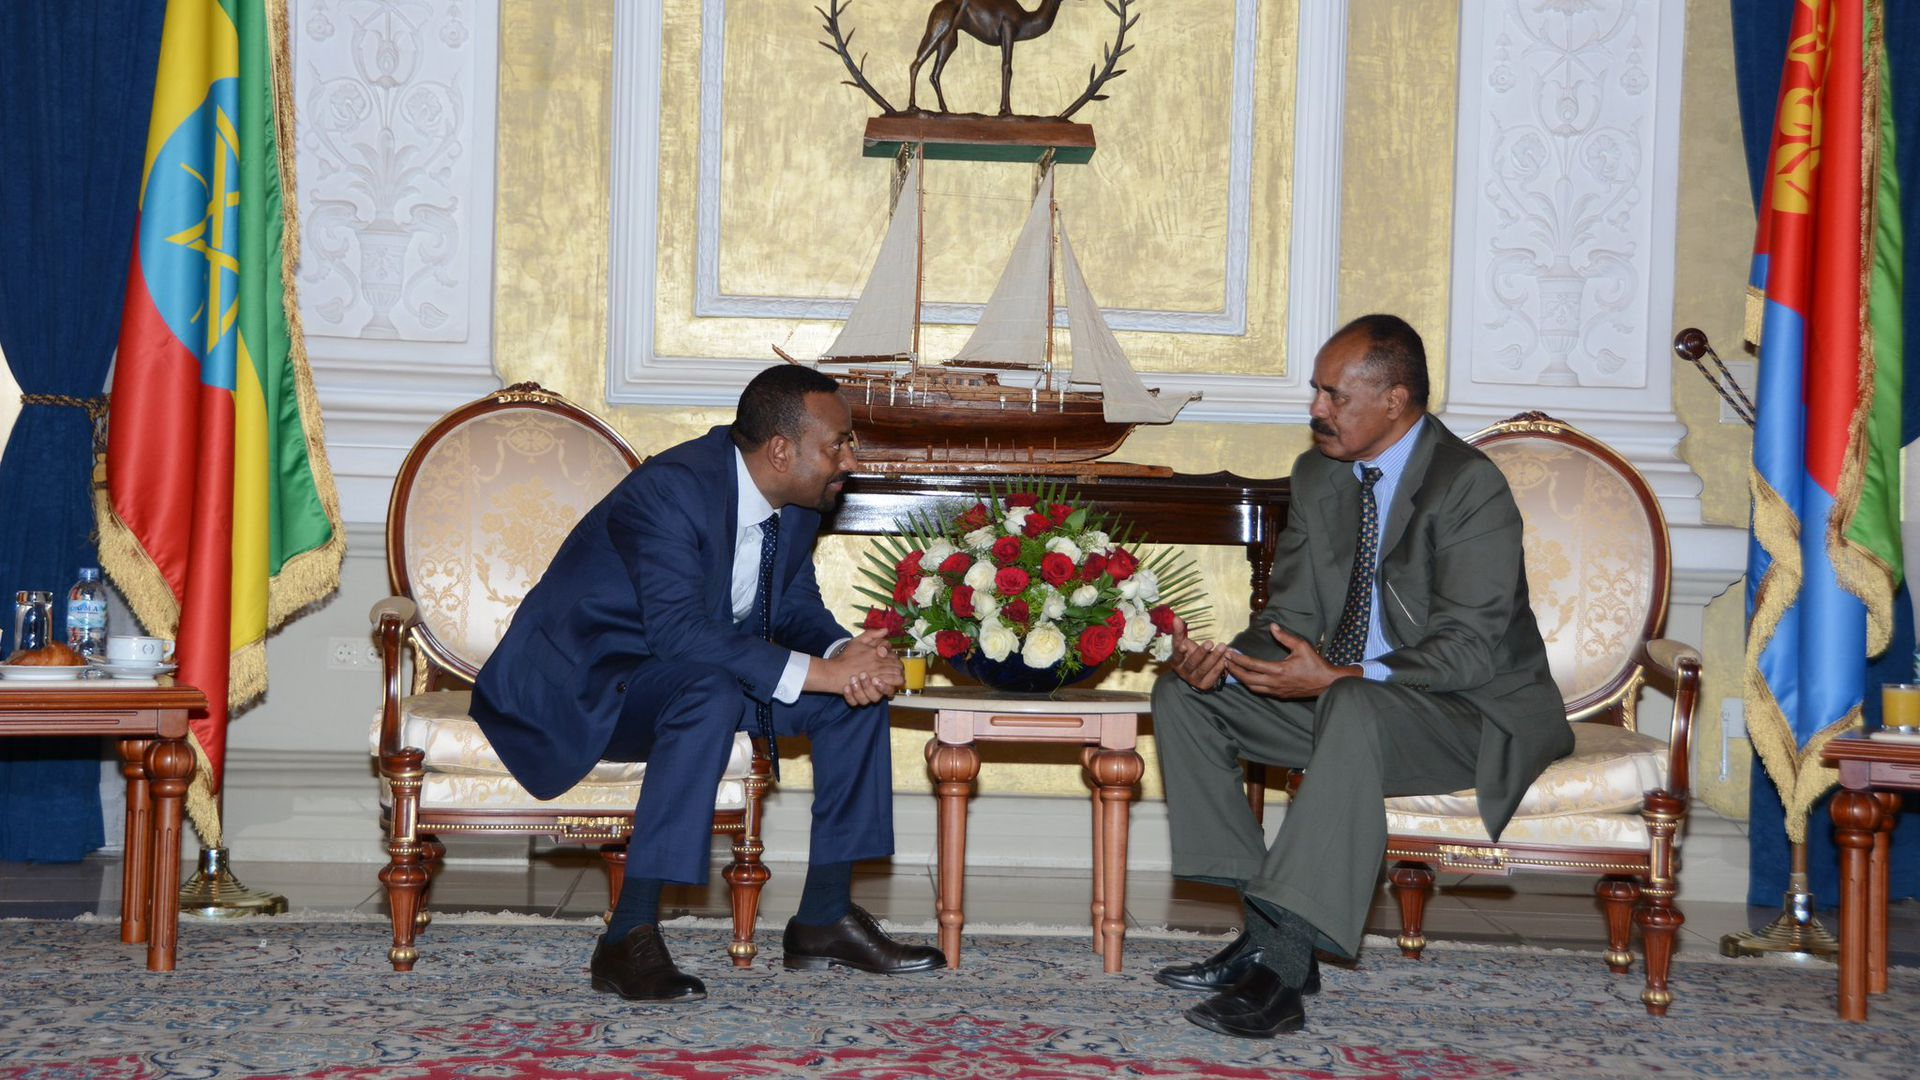 Ethiopian Prime Minister Abiy Ahmed and Erirean President Isaias Afwerki